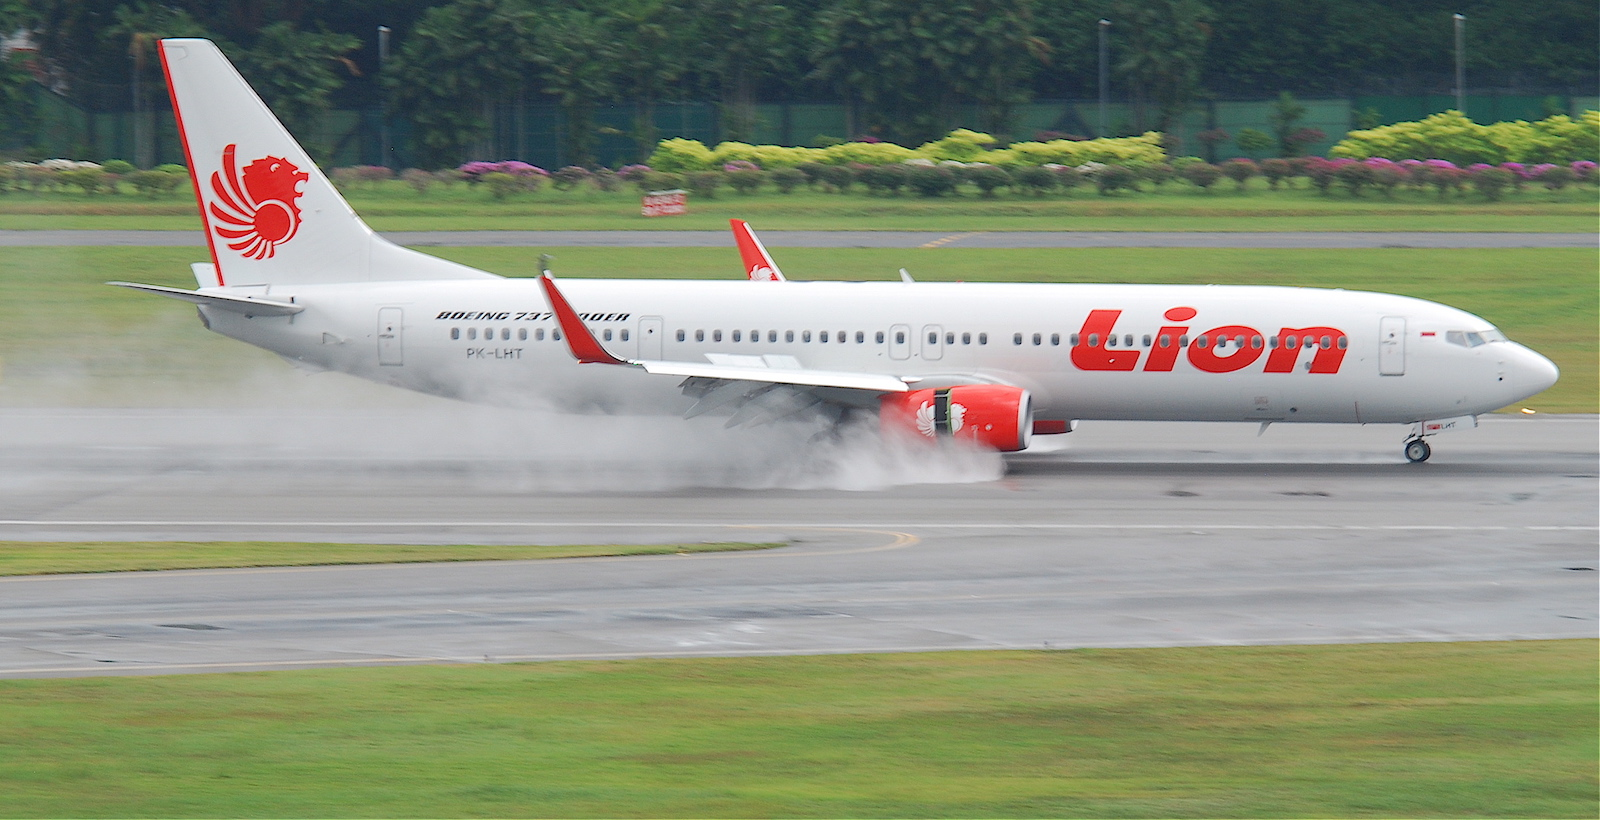 Lion Air's safety record makes for troubling reading ­– 14 accidents, several serious, from 2002 onwards. (Photo: Wikimedia Commons)